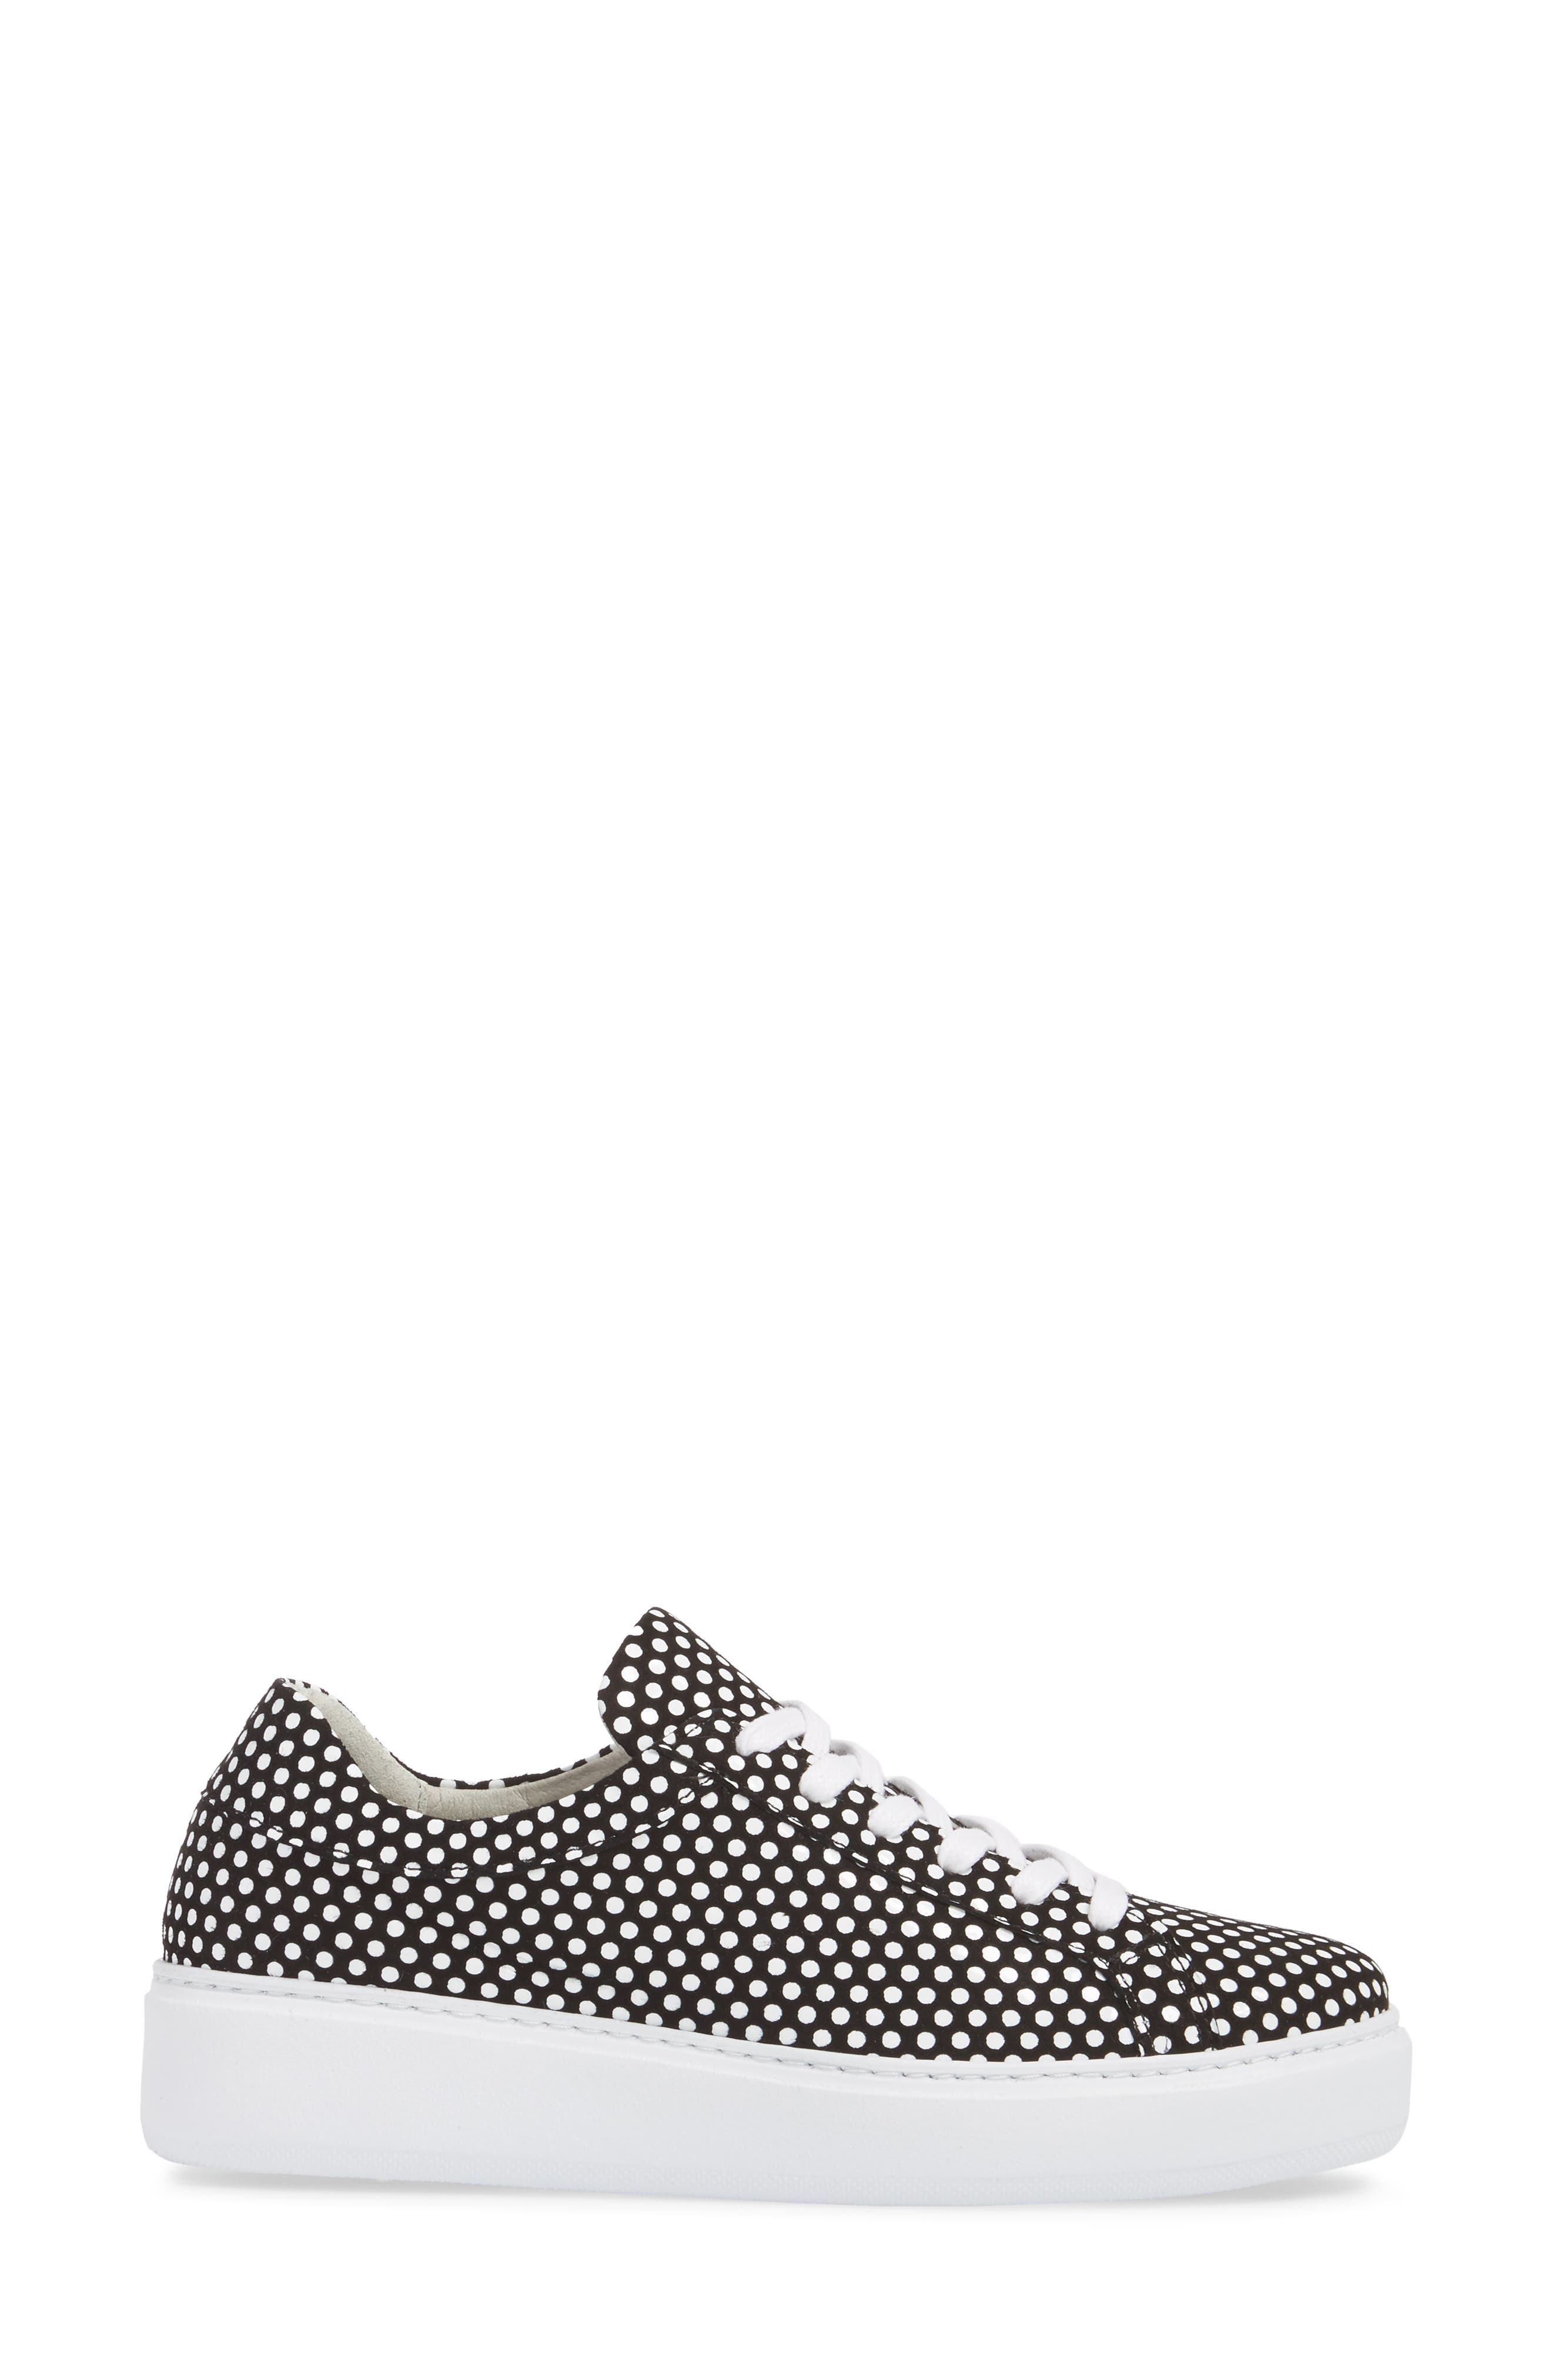 Tully Sneaker,                             Alternate thumbnail 3, color,                             POP SUPREME LEATHER